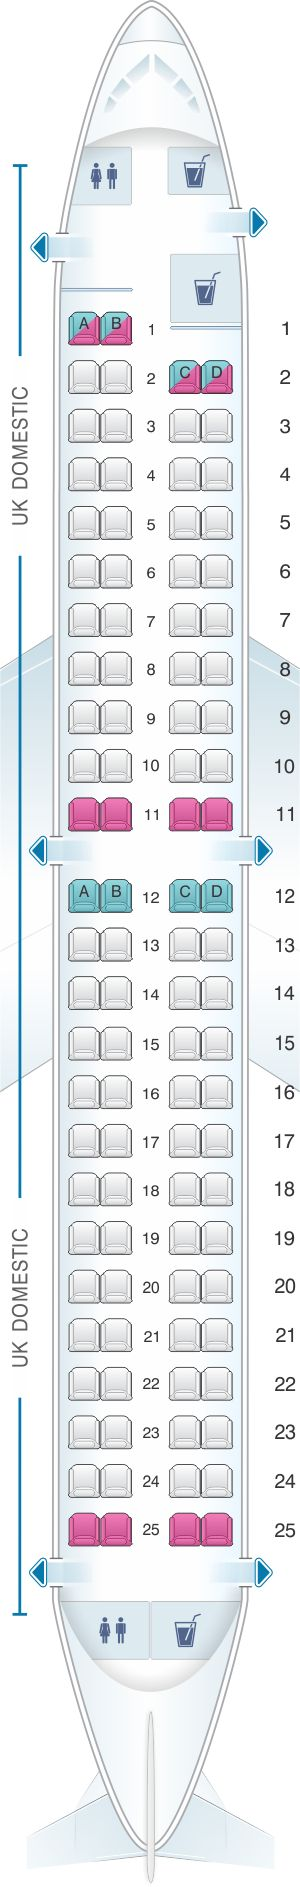 Seat Map British Airways Embraer 190 UK Domestic